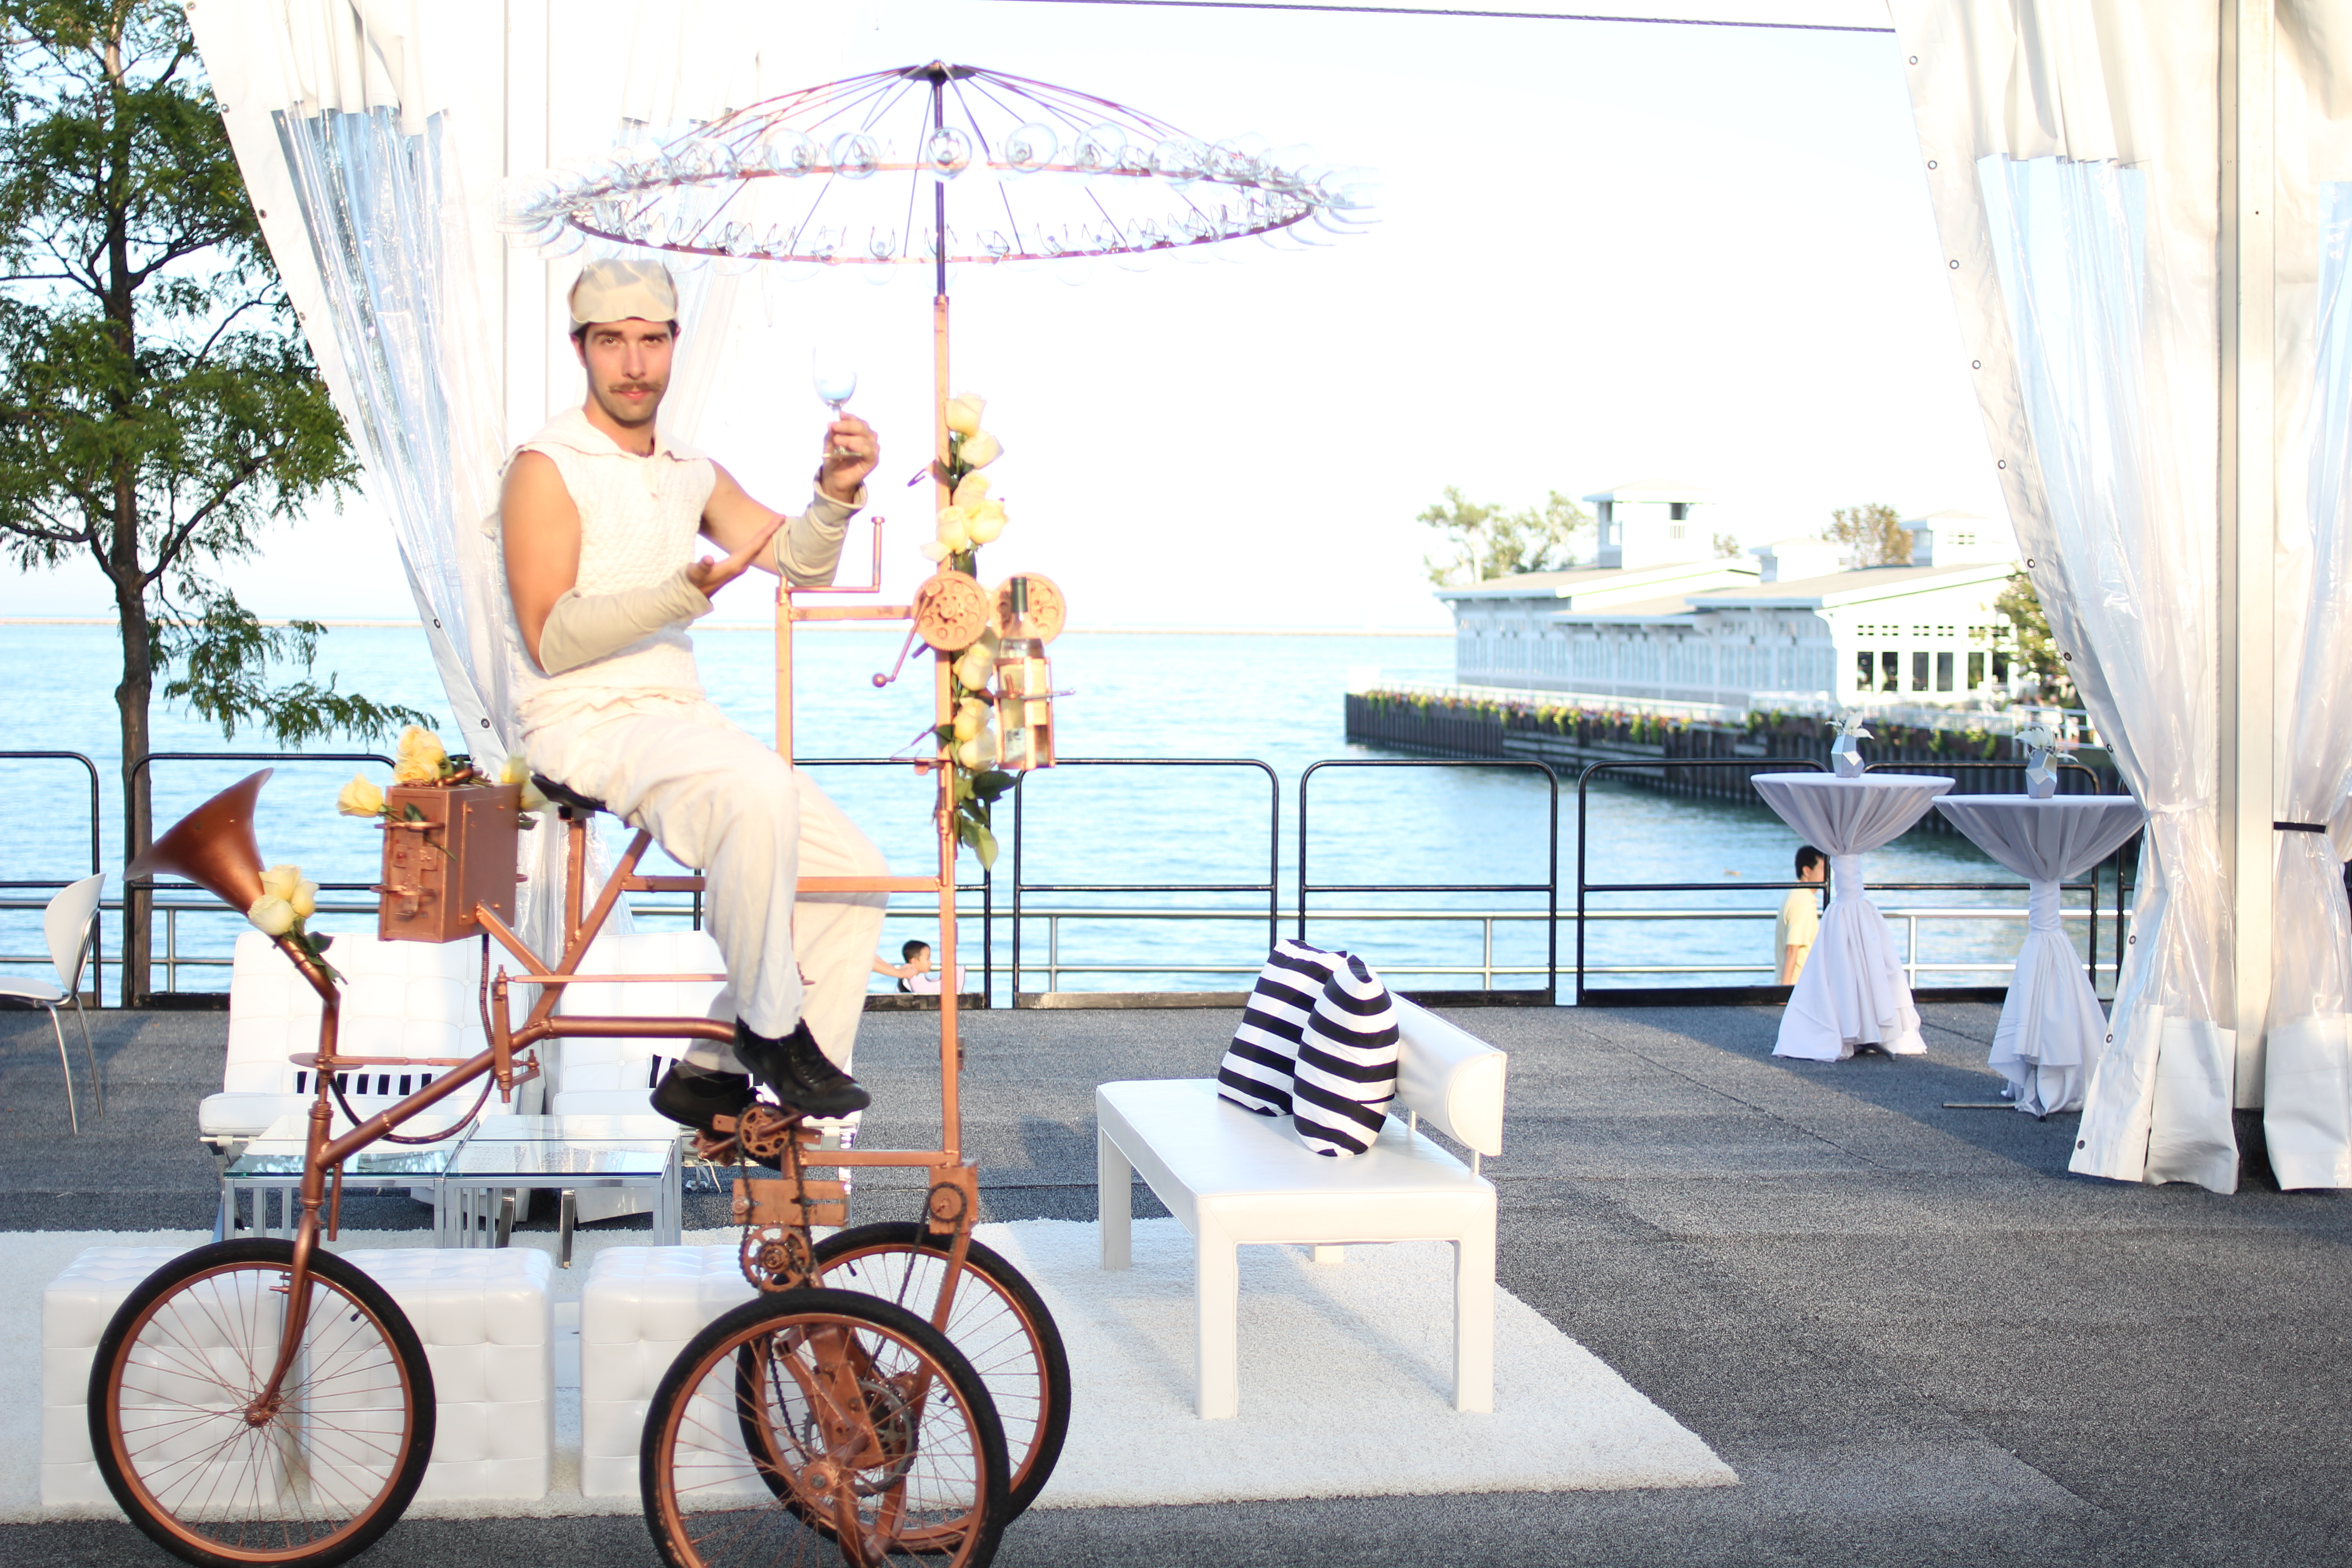 Impress your guests with this custom pedal-powered bicycle, which provides surprising and spectacular wine, juice or sparkling water service. A chandelier of stemmed glassware spins above the head of a rider, who works with exquisite precision as a series of mechanical interactions pour wine into a waiting glass.